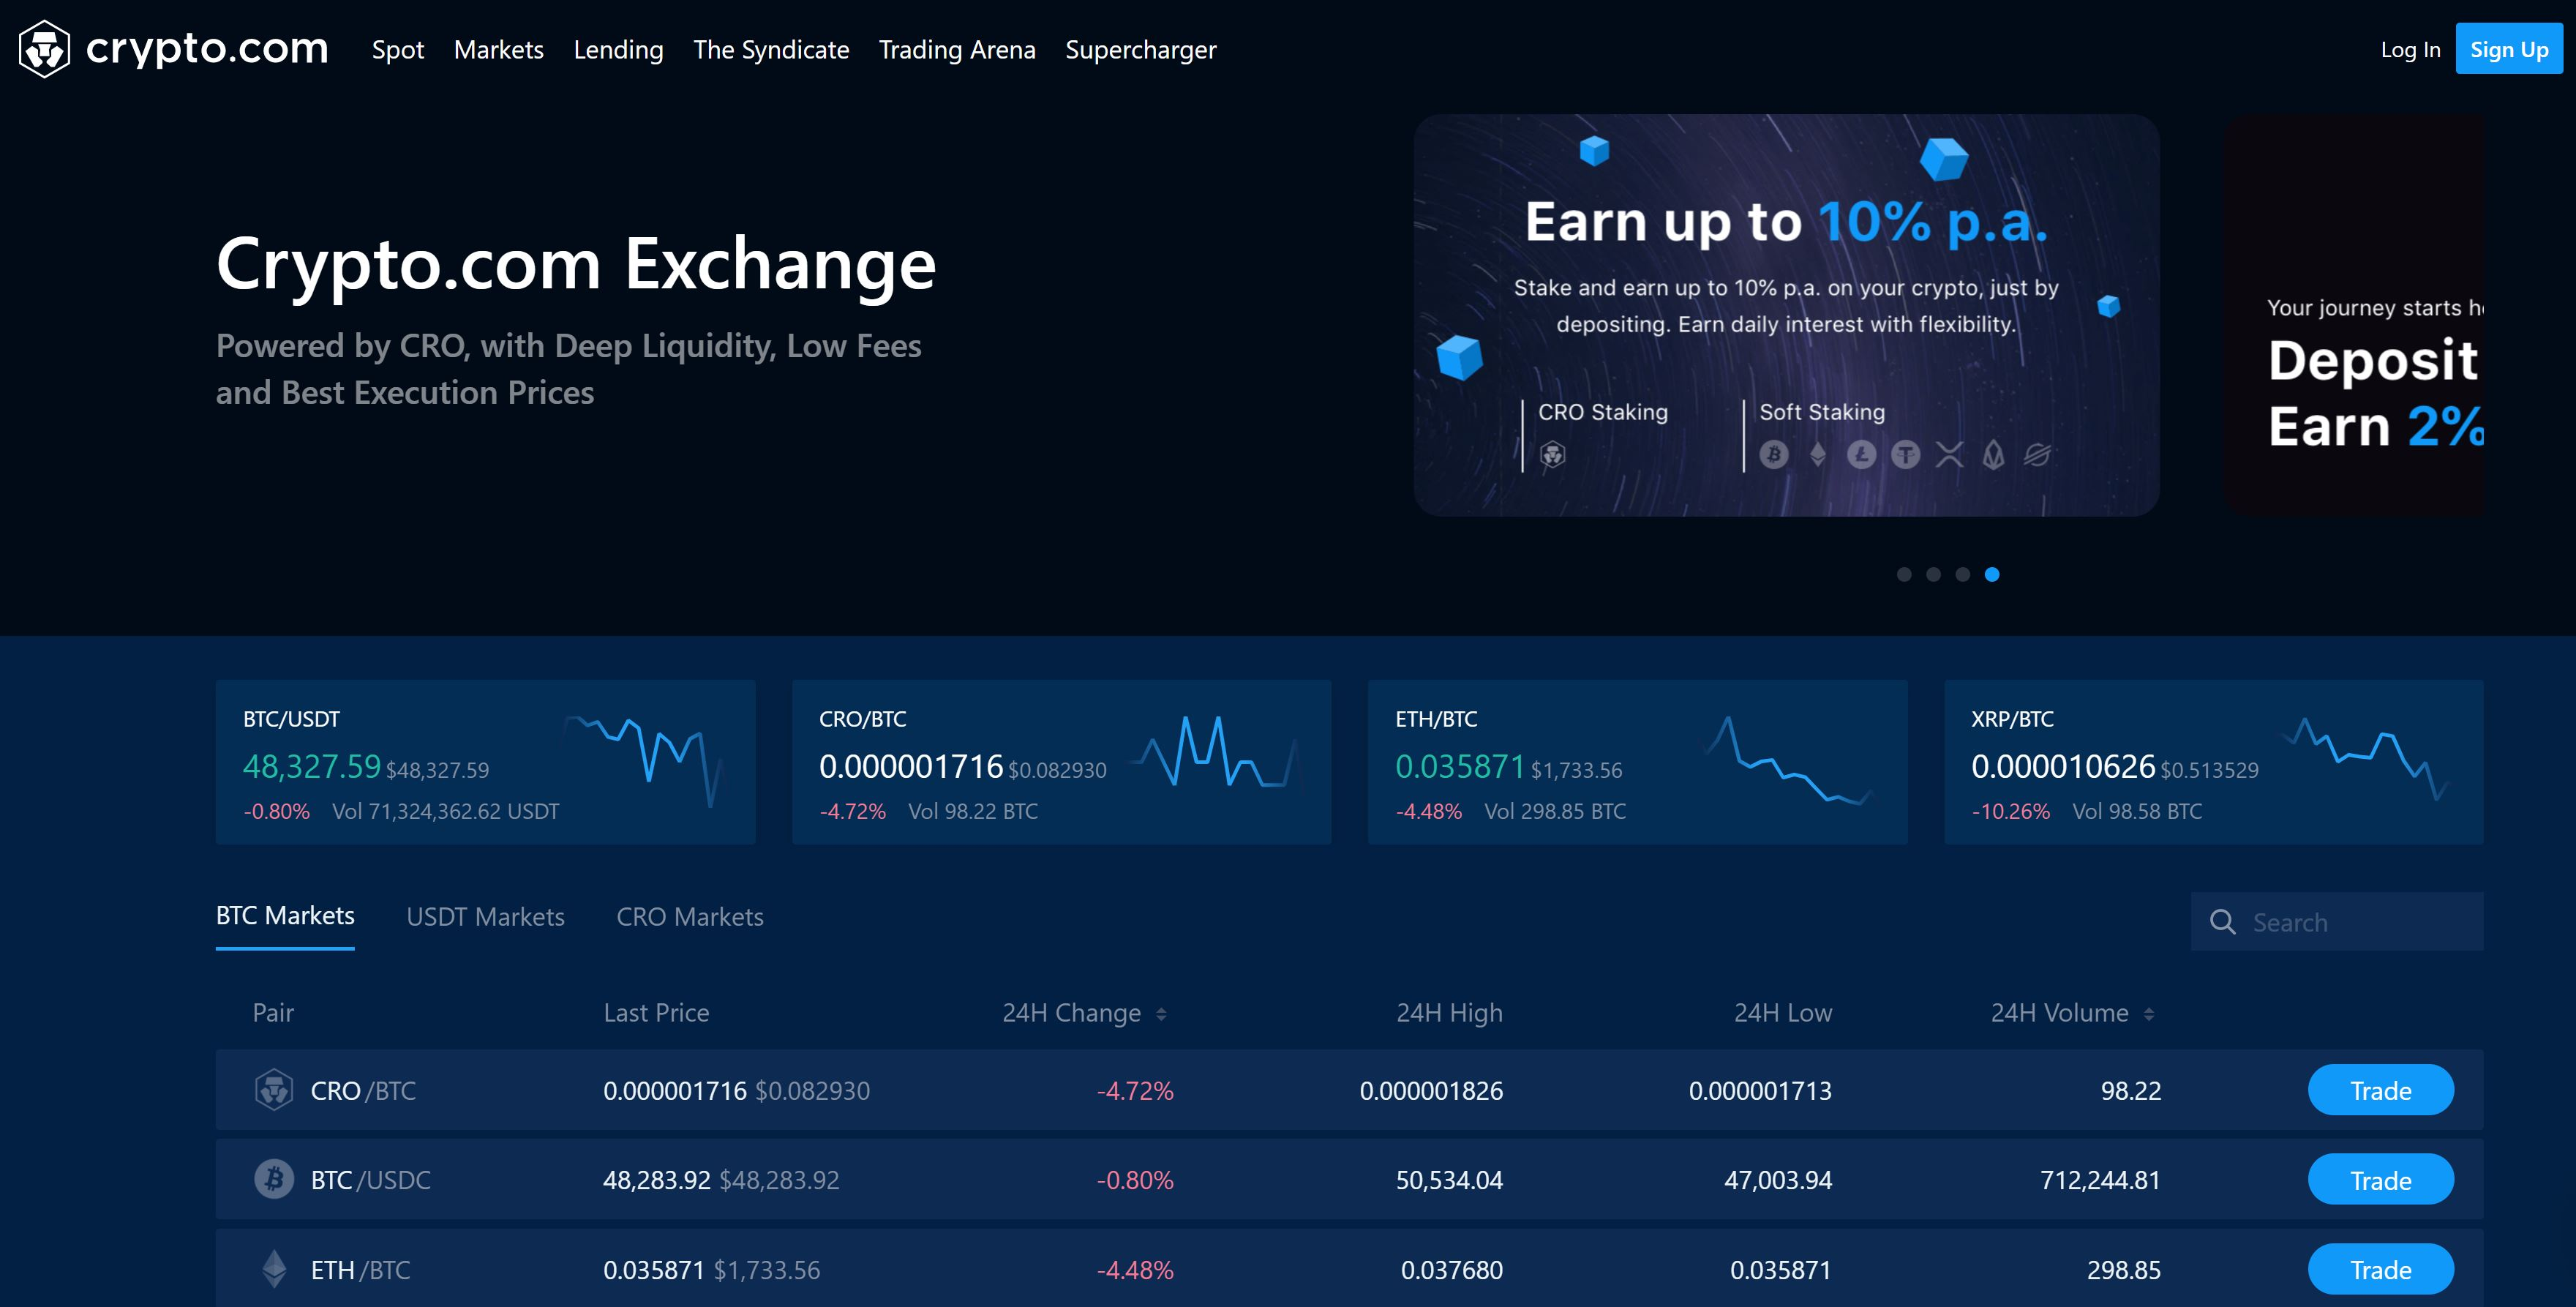 Crypto.com Exchange de un vistazo